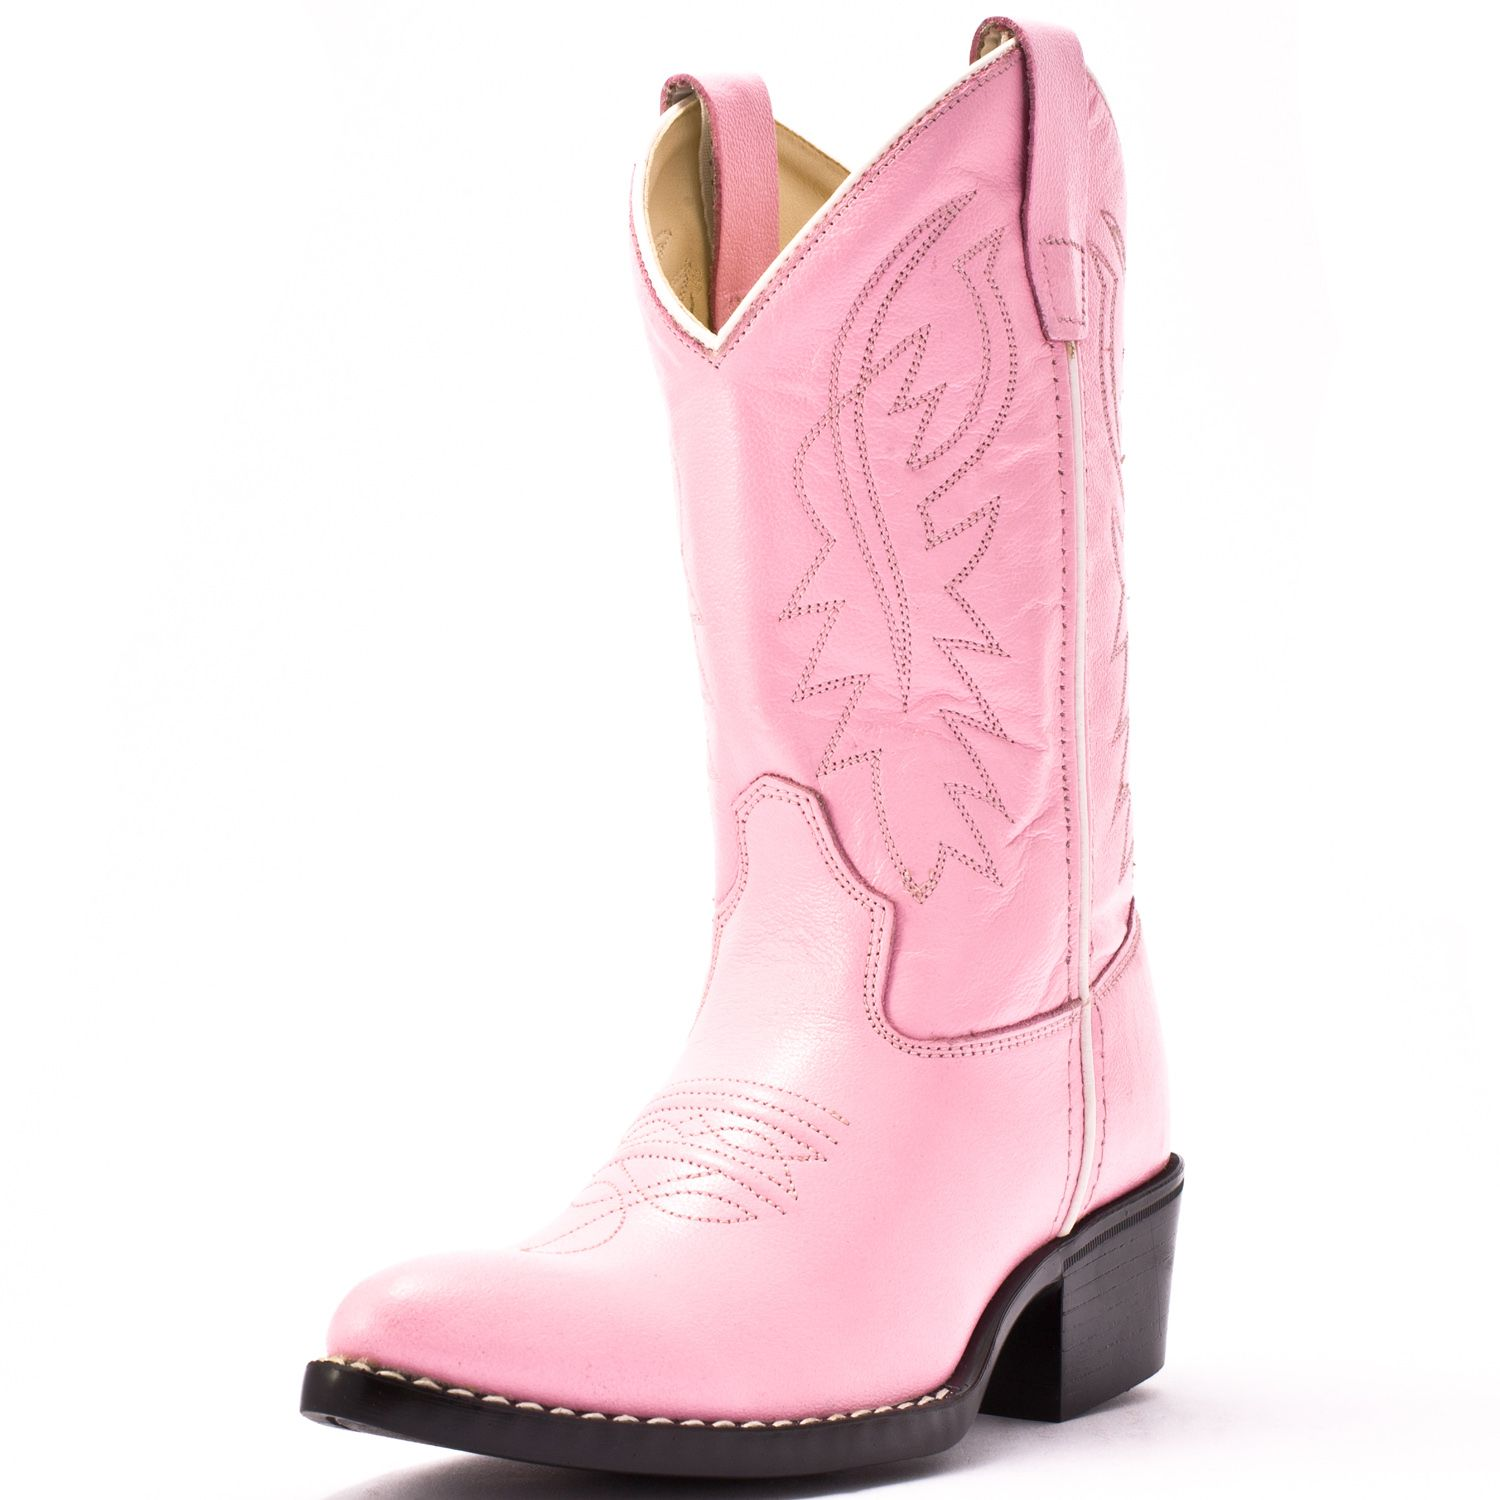 641ff8c2a356 Image detail for -... Old West Pink Western Cowboy Boots 8119 PINK - PFI  Western Store